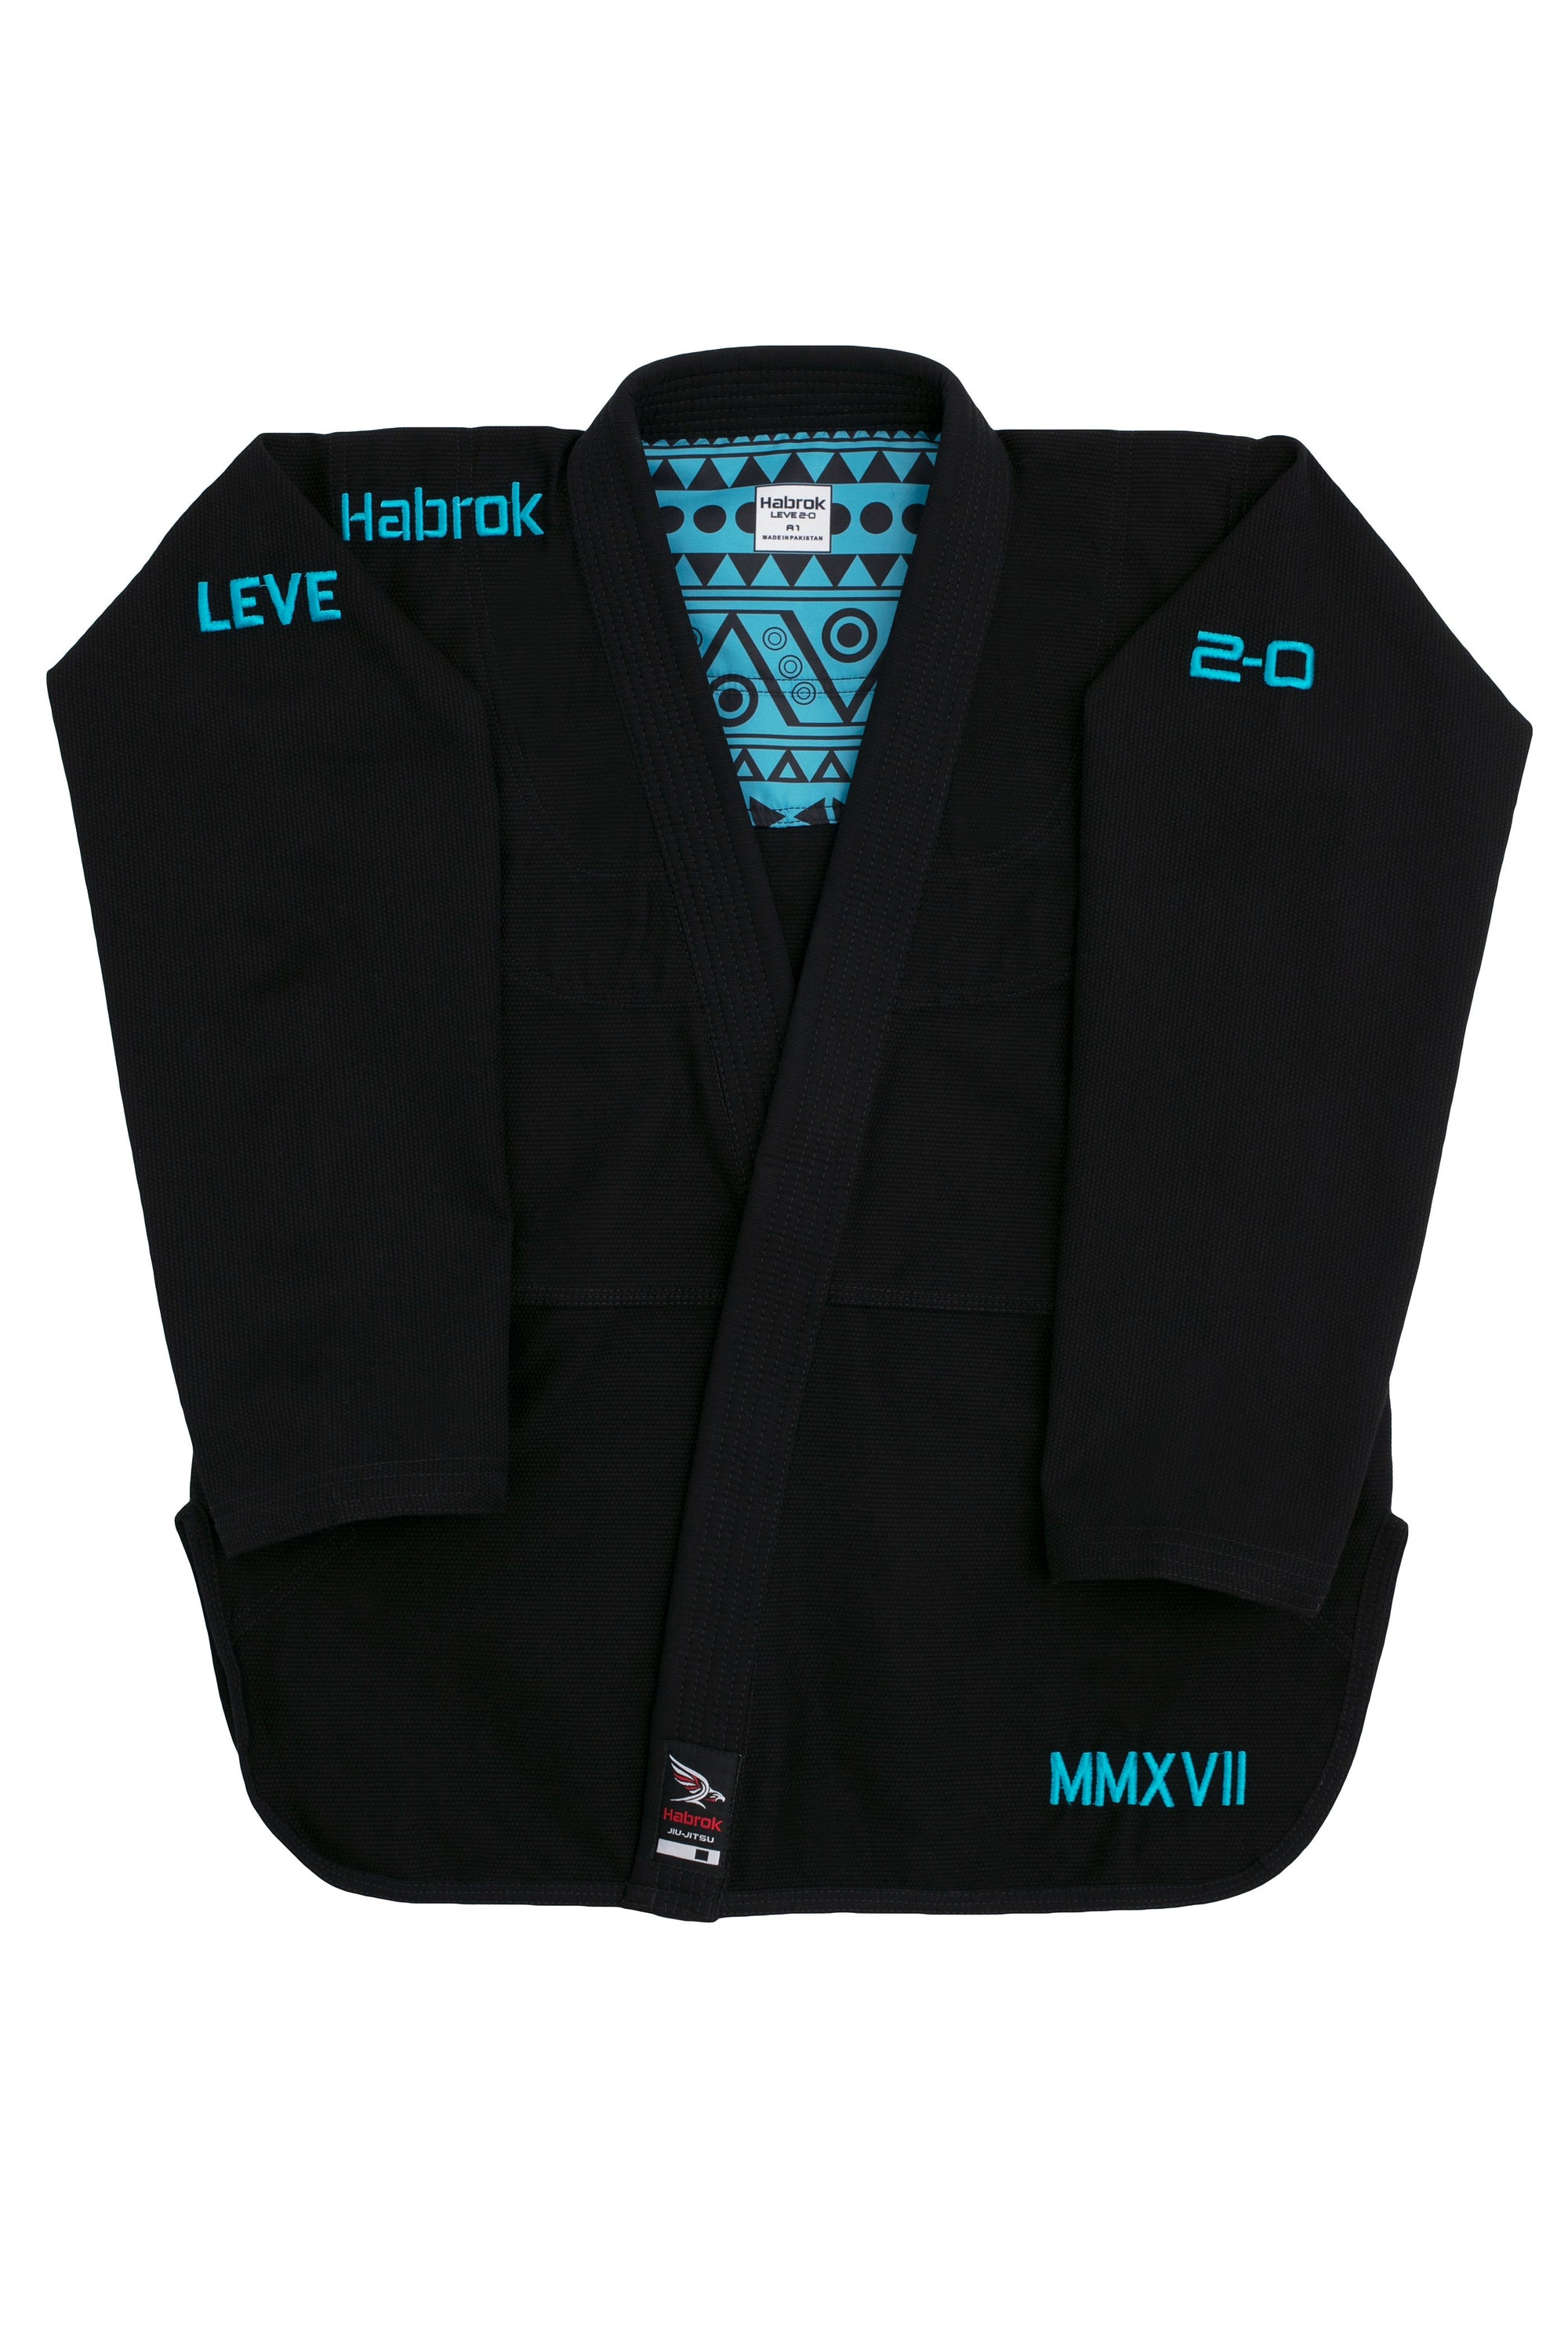 Leve 2.0 | Men | Premium Ultra Light Weight Gi